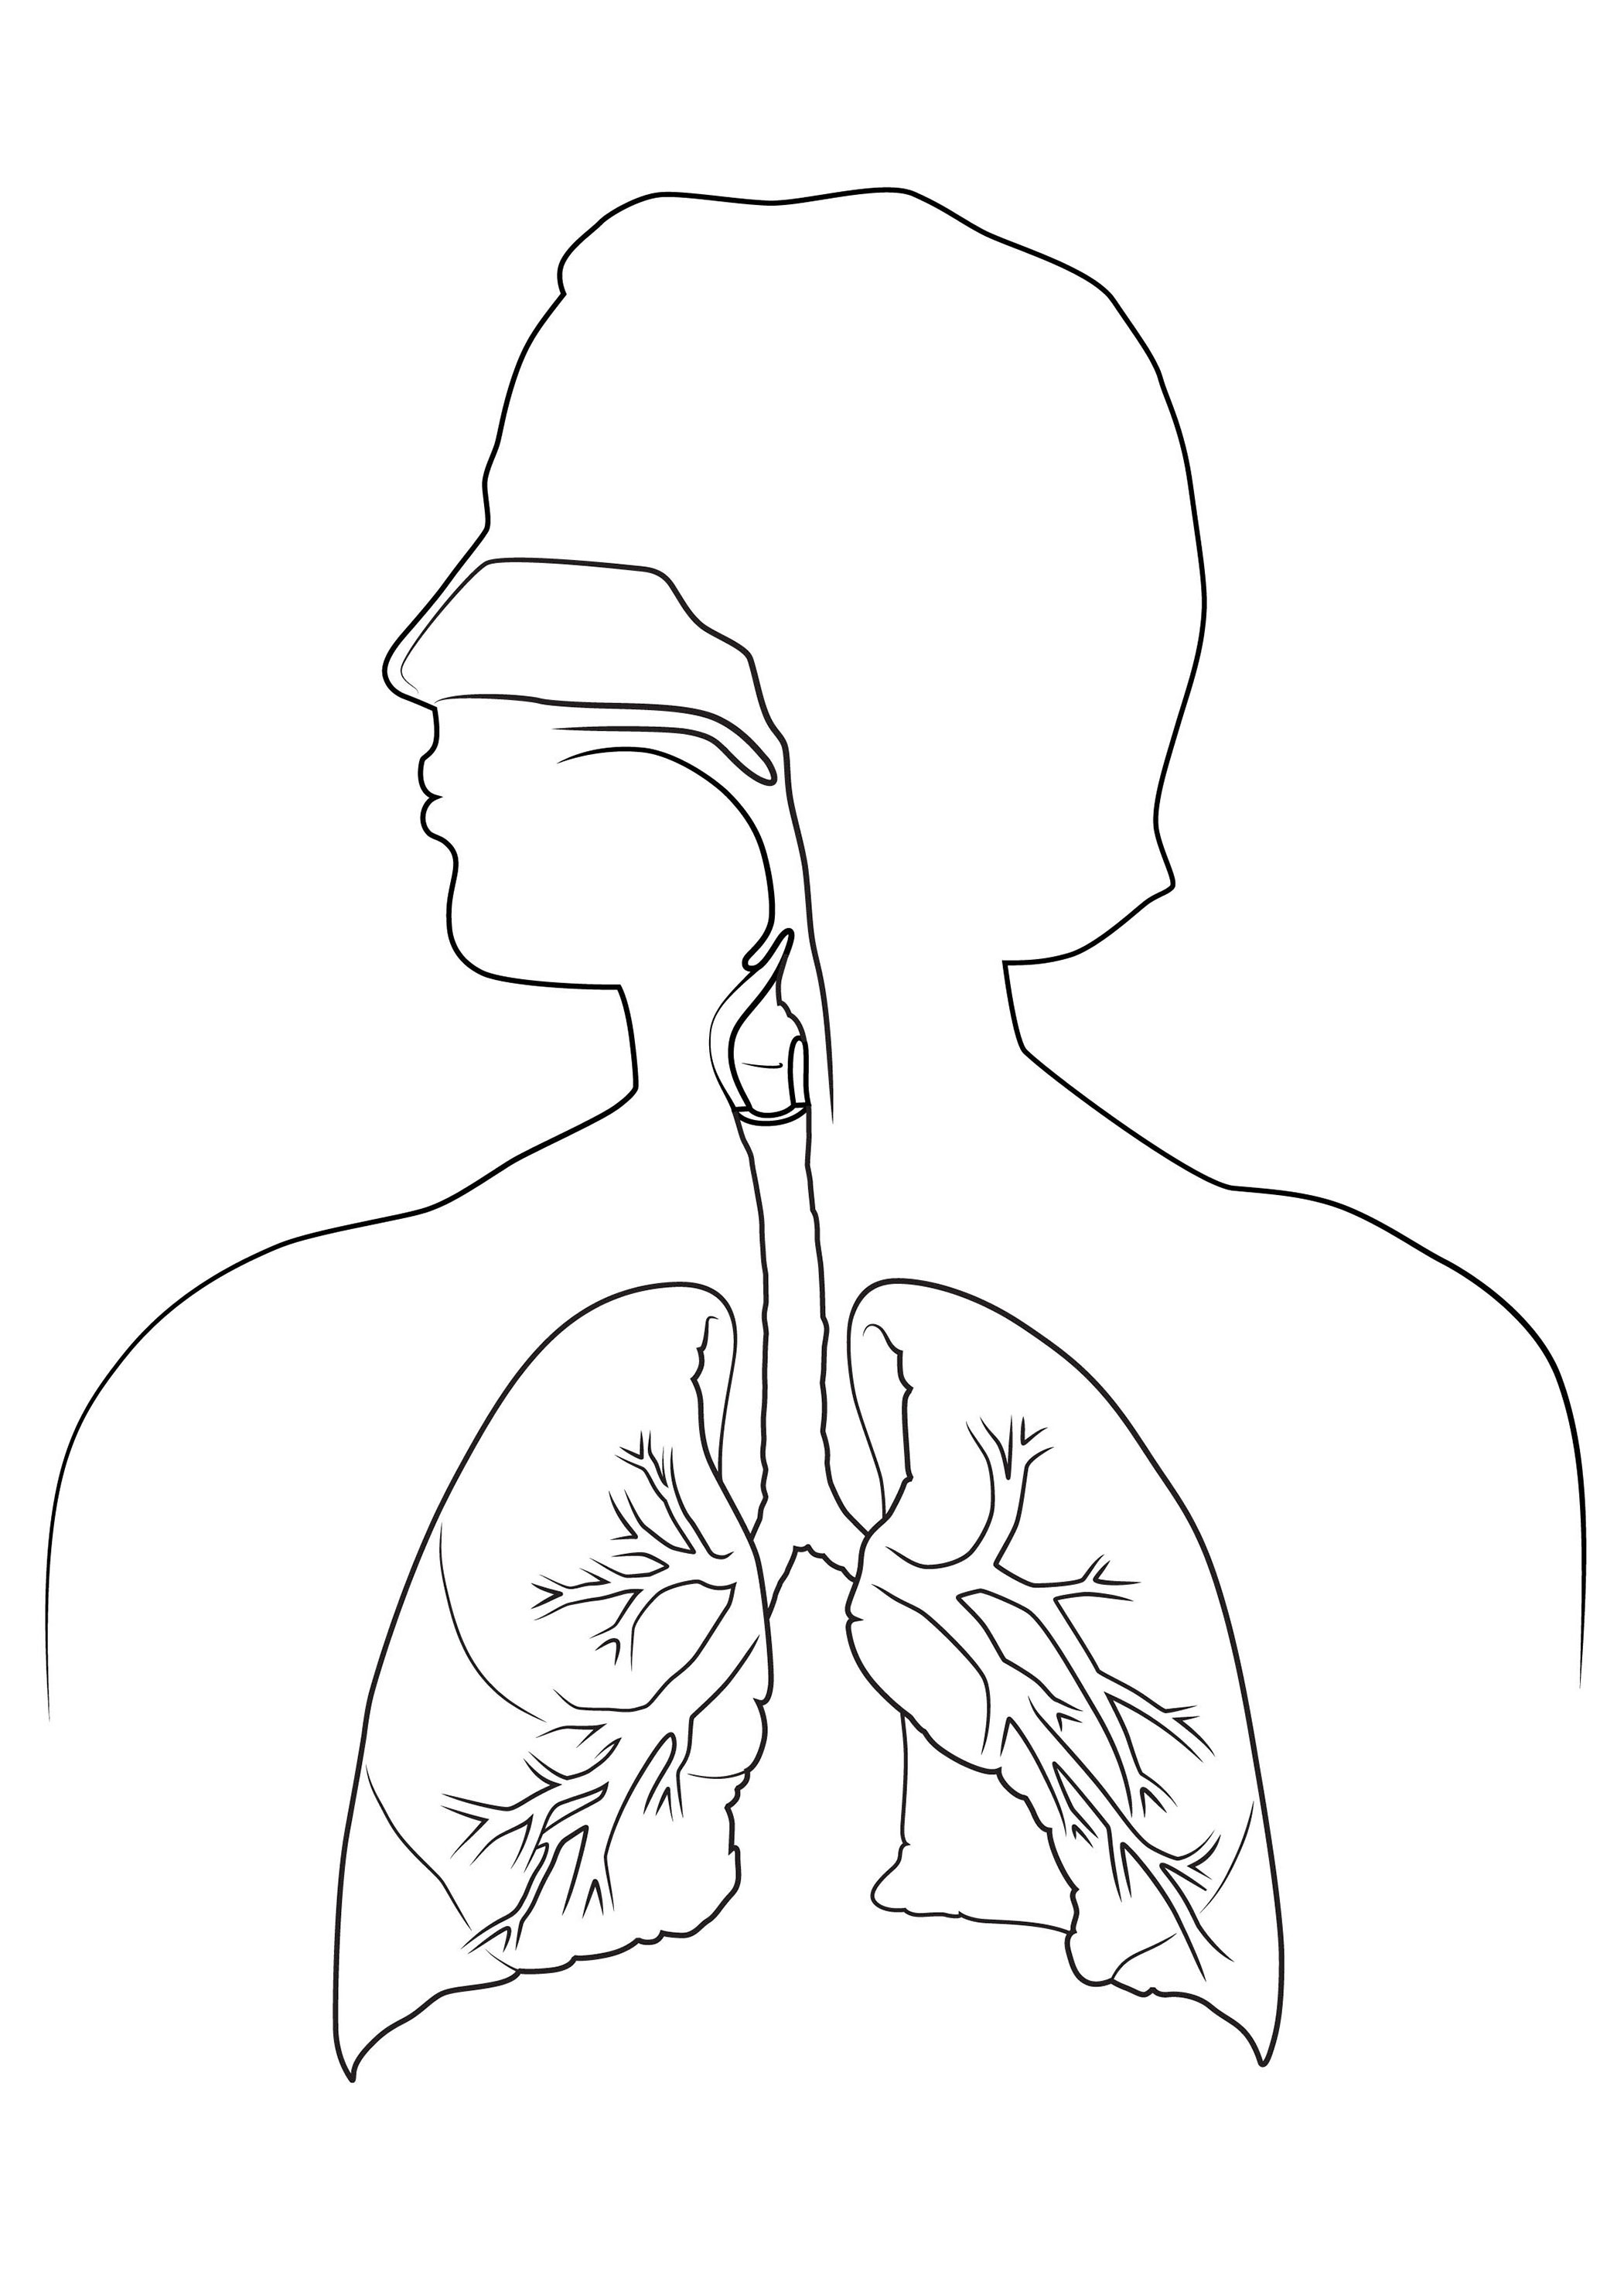 Respiratory System Drawing At Getdrawings